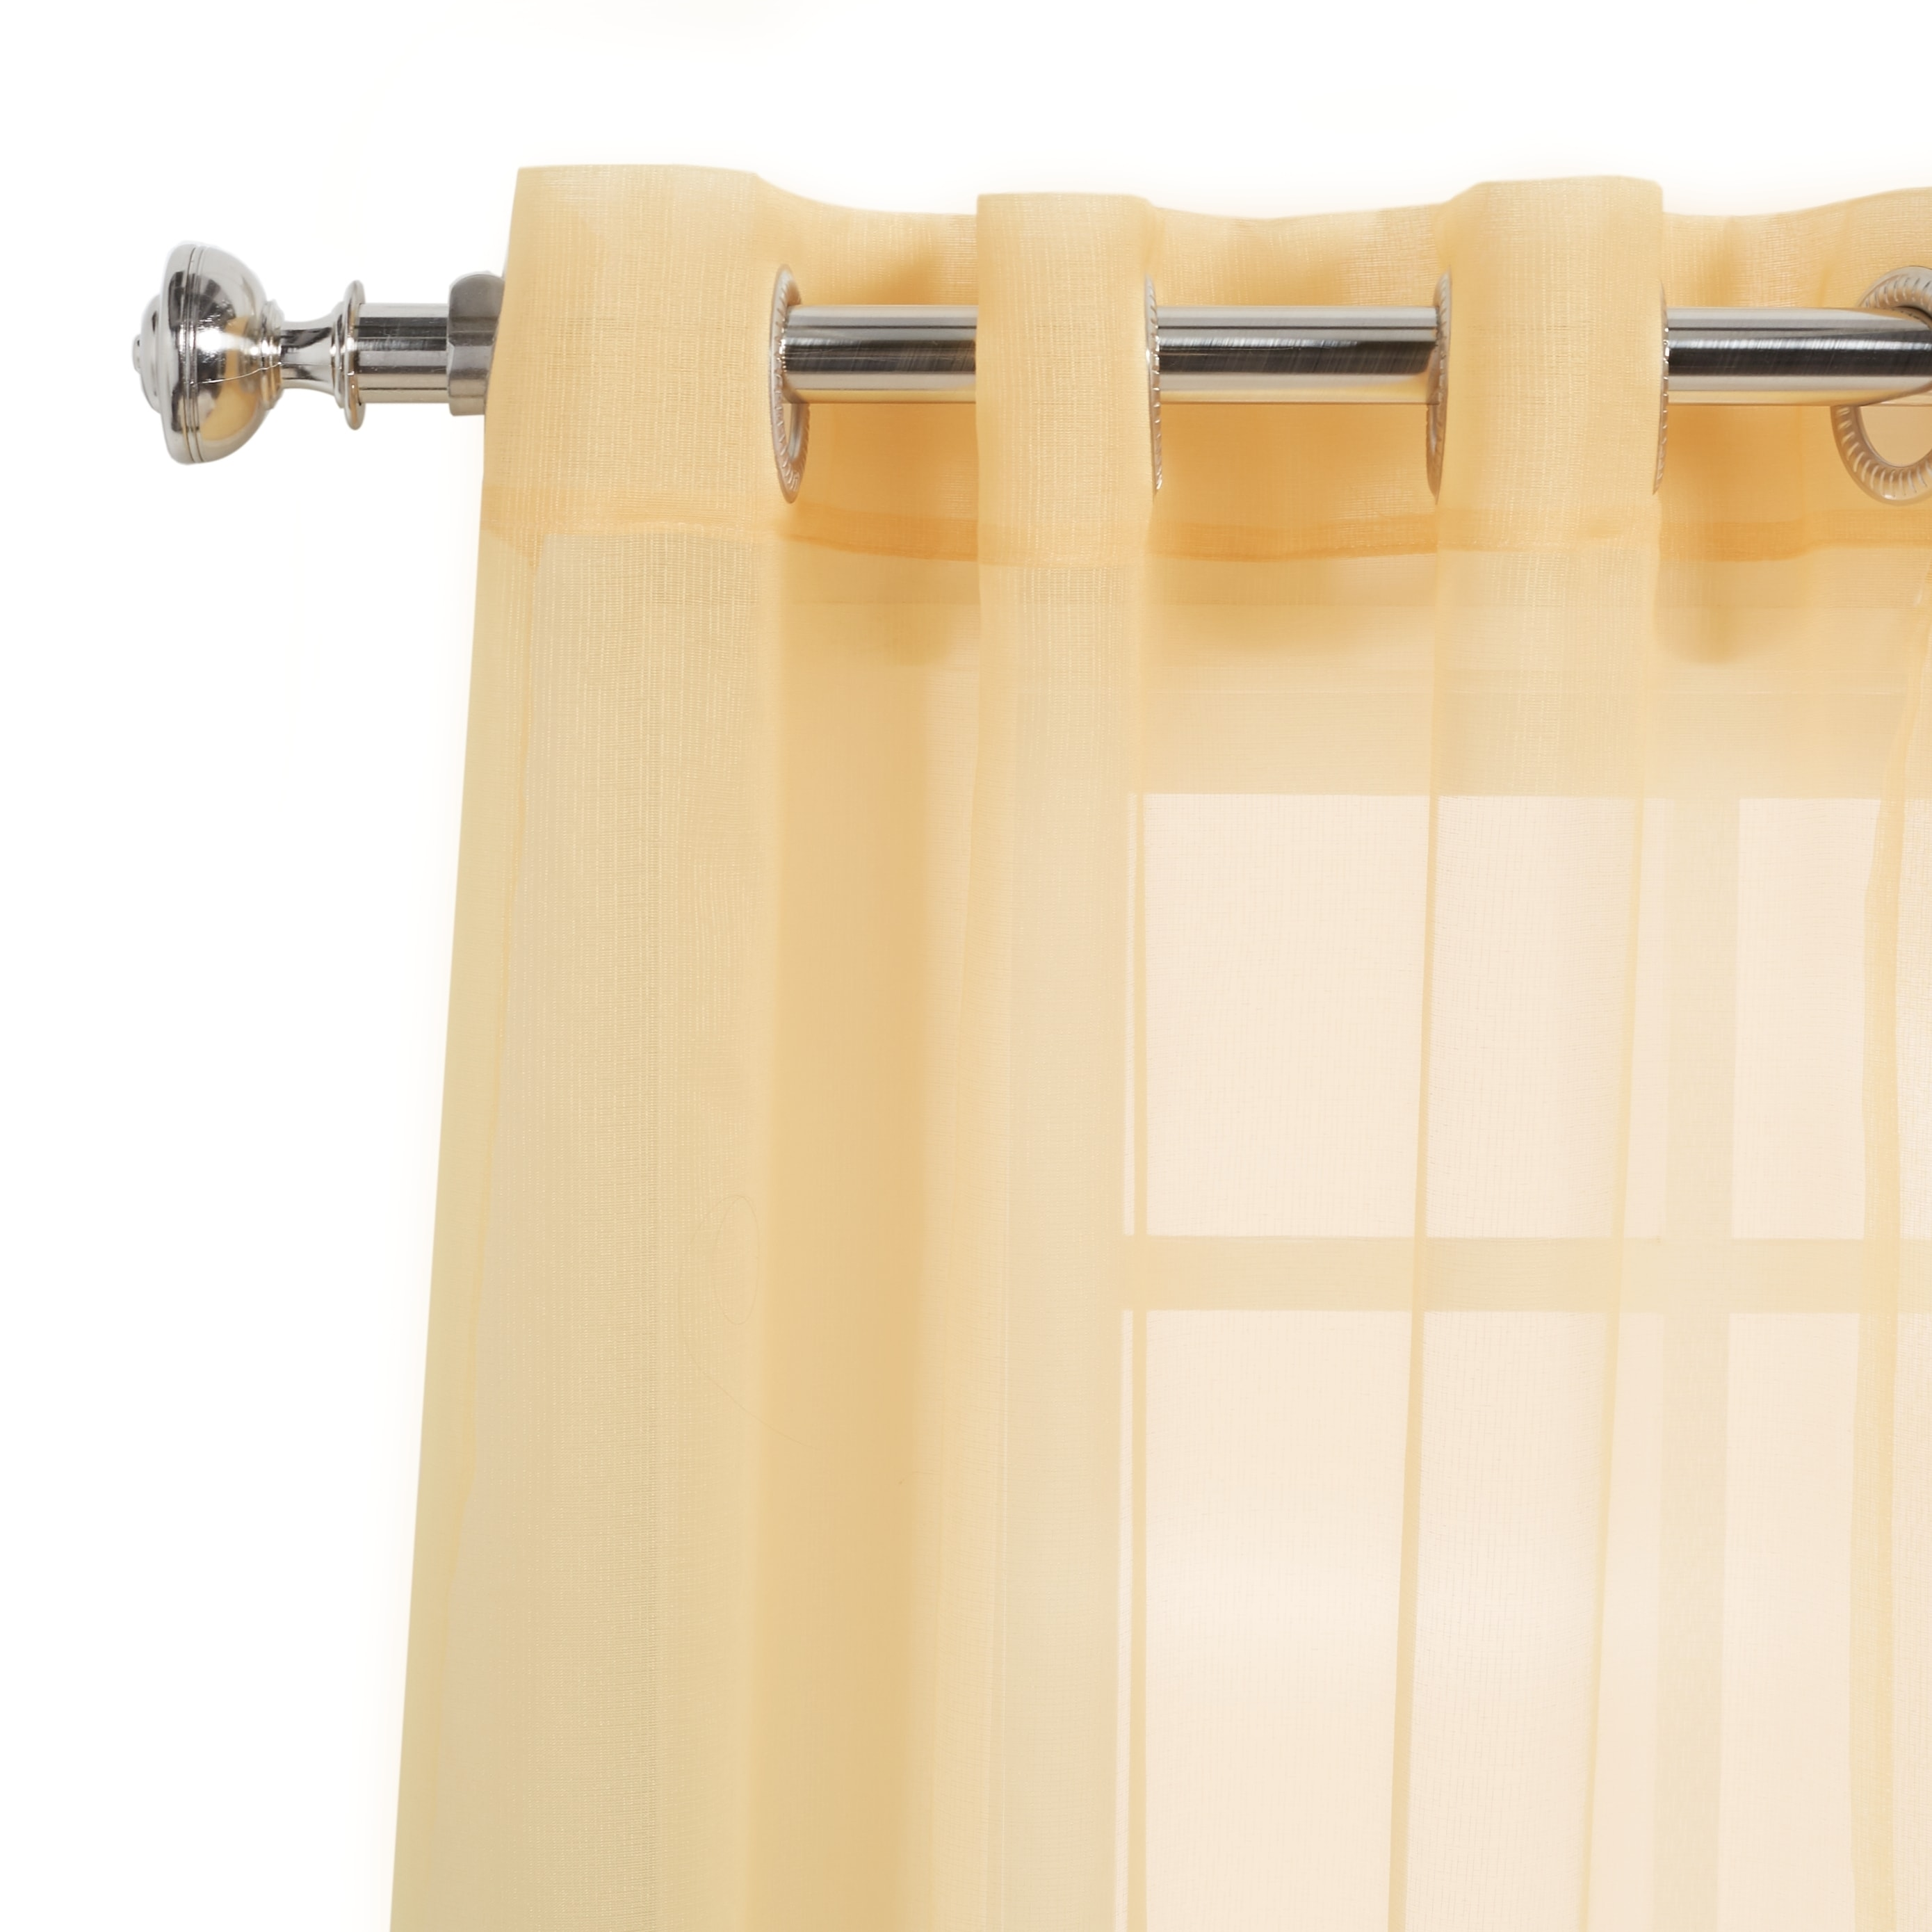 coral on modernday portrayal double panel dipped sewsuecustomizes graceful sea curtain ombre panels curtains